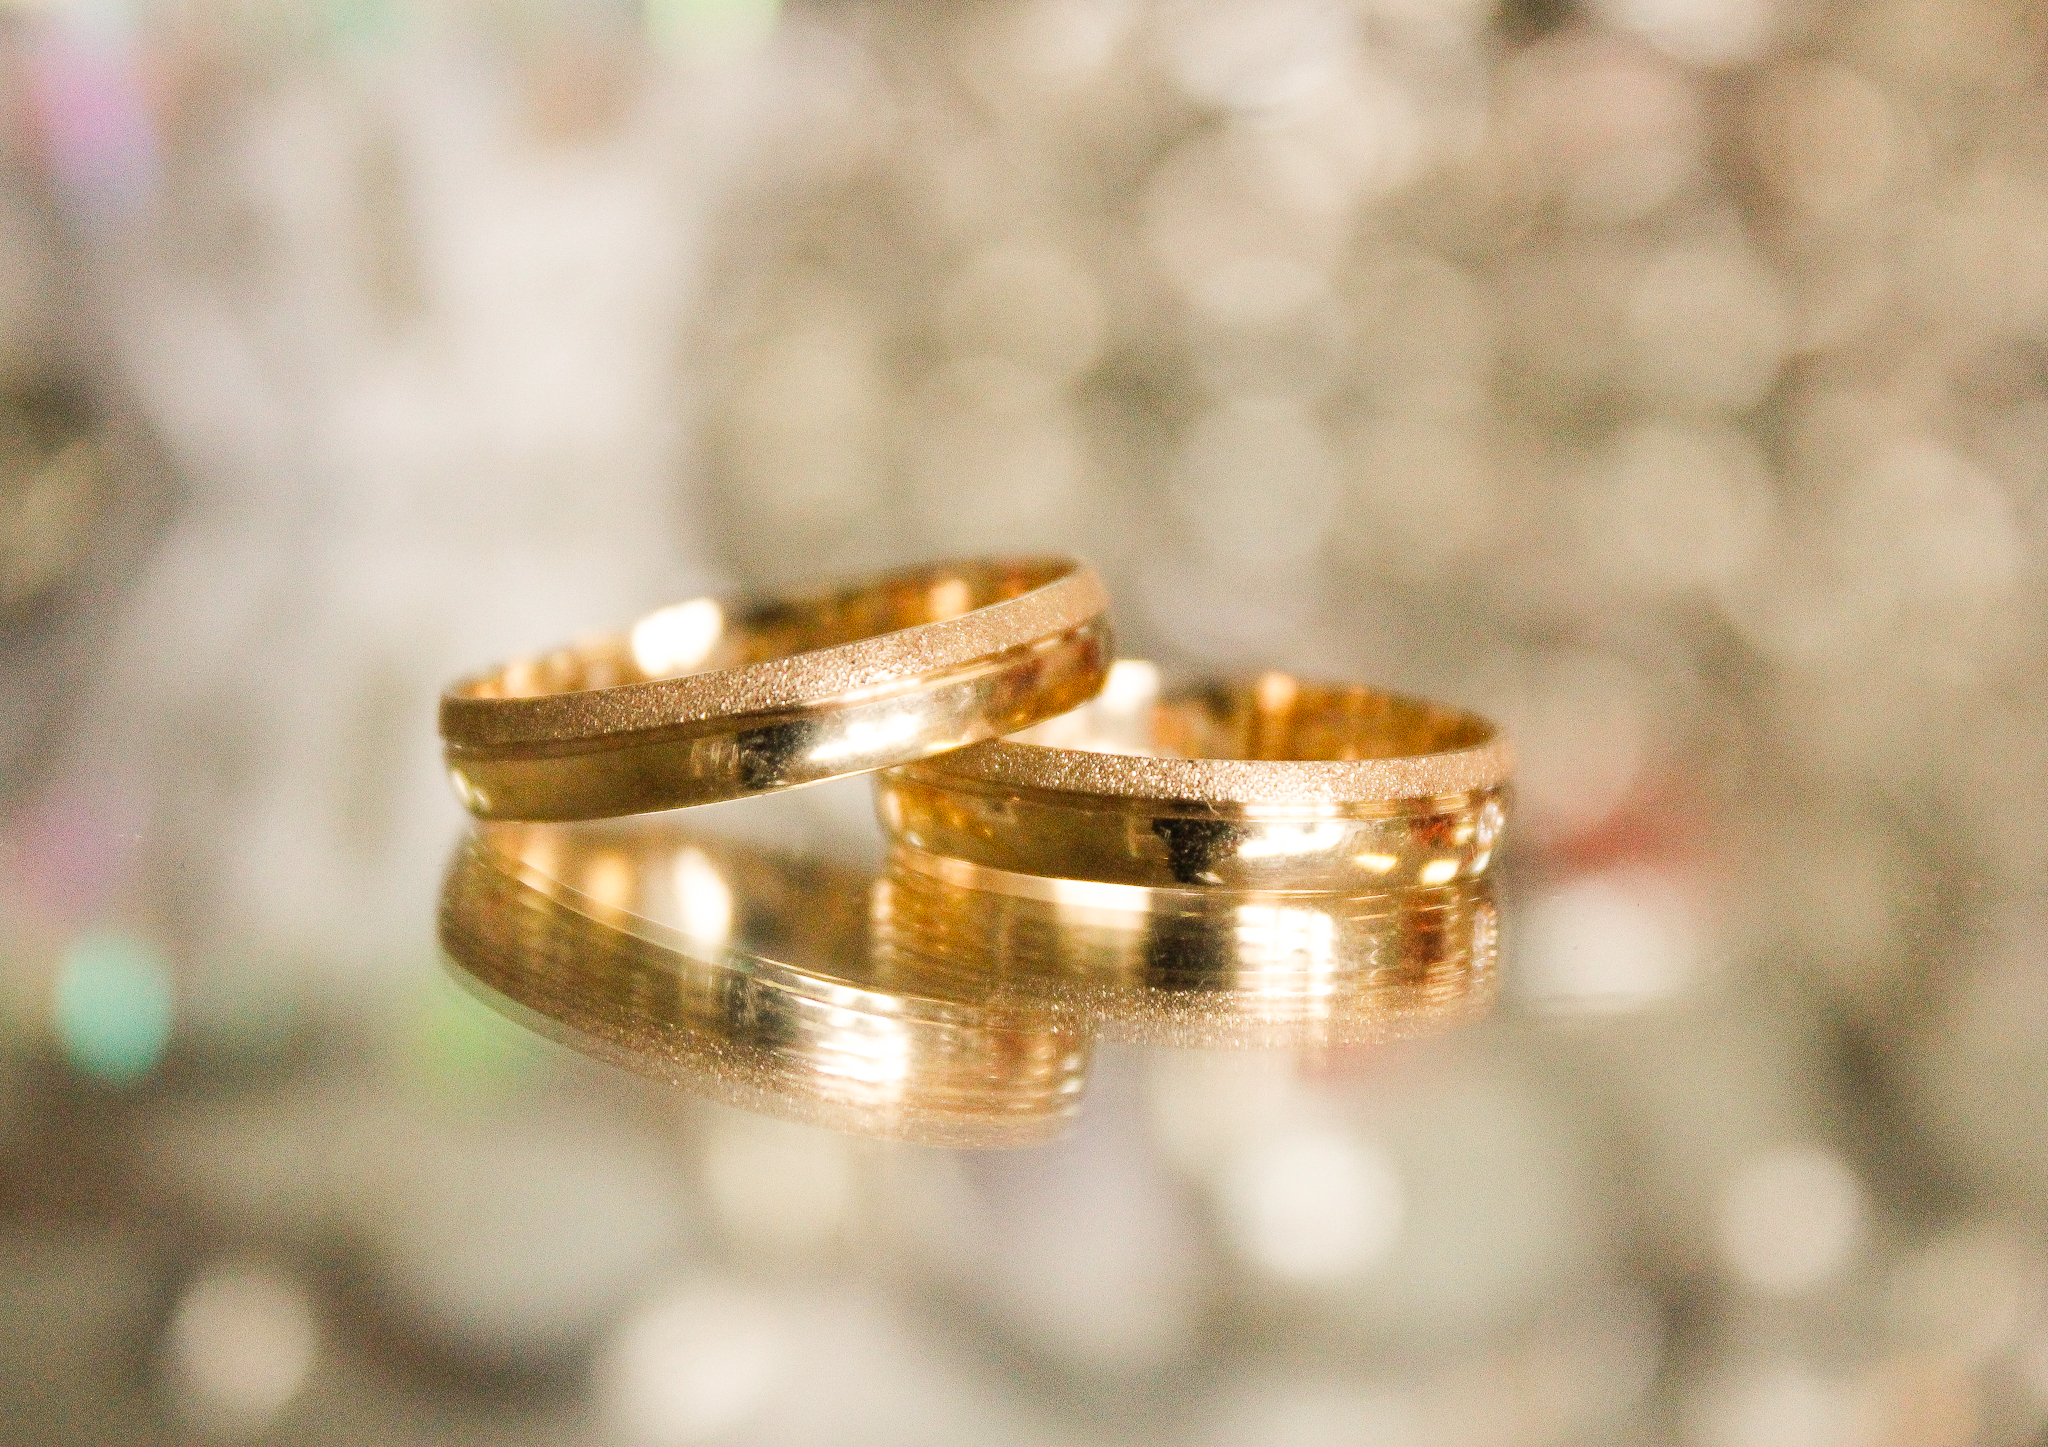 500 Engaging Wedding Rings Photos Pexels Free Stock Photos